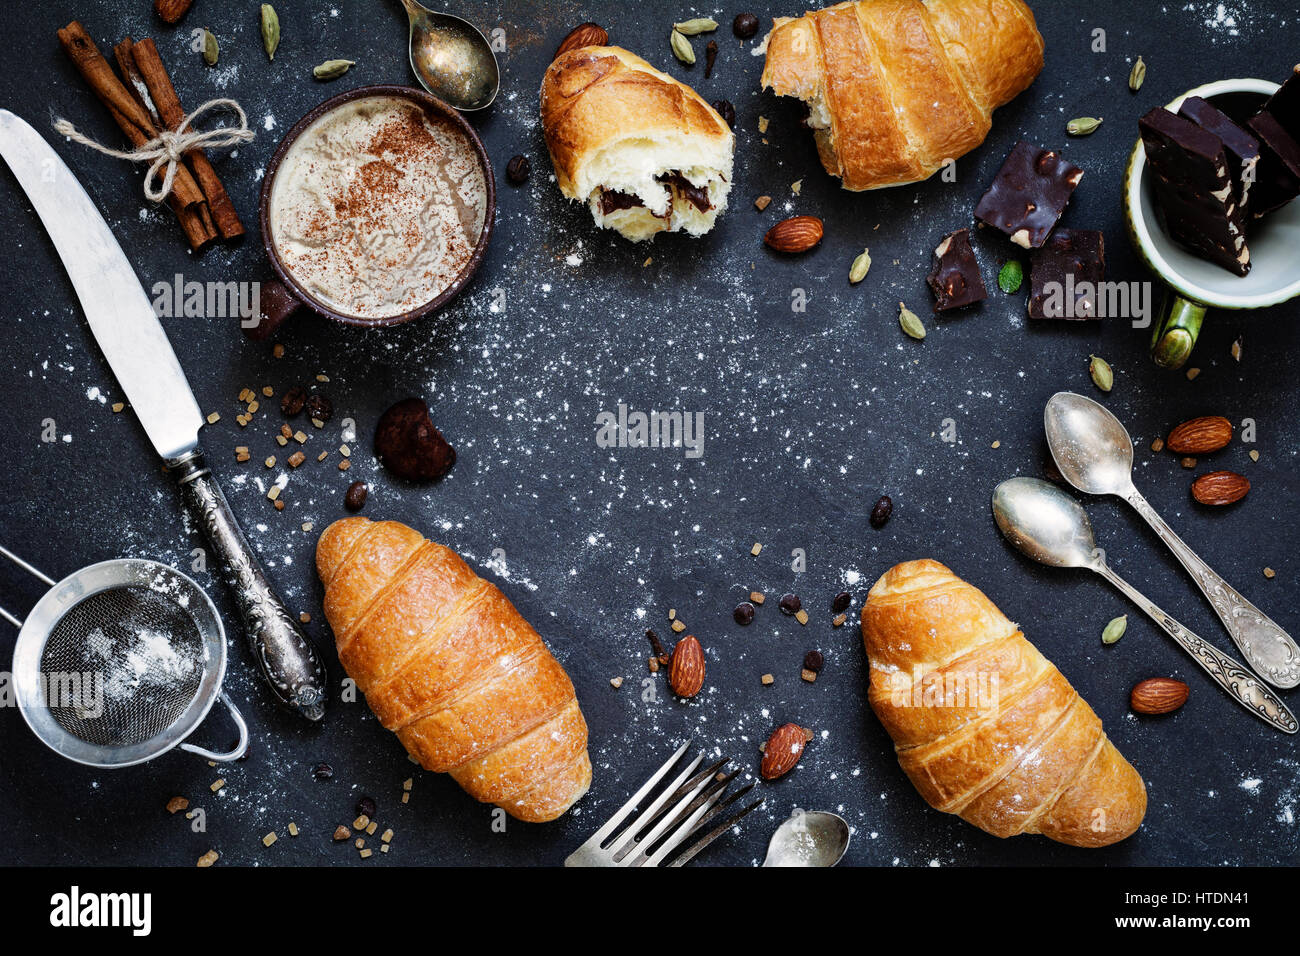 Coffee, croissants, chocolate, spices, nuts and vintage cutlery. Flat lay composition of sweet breakfast food on - Stock Image